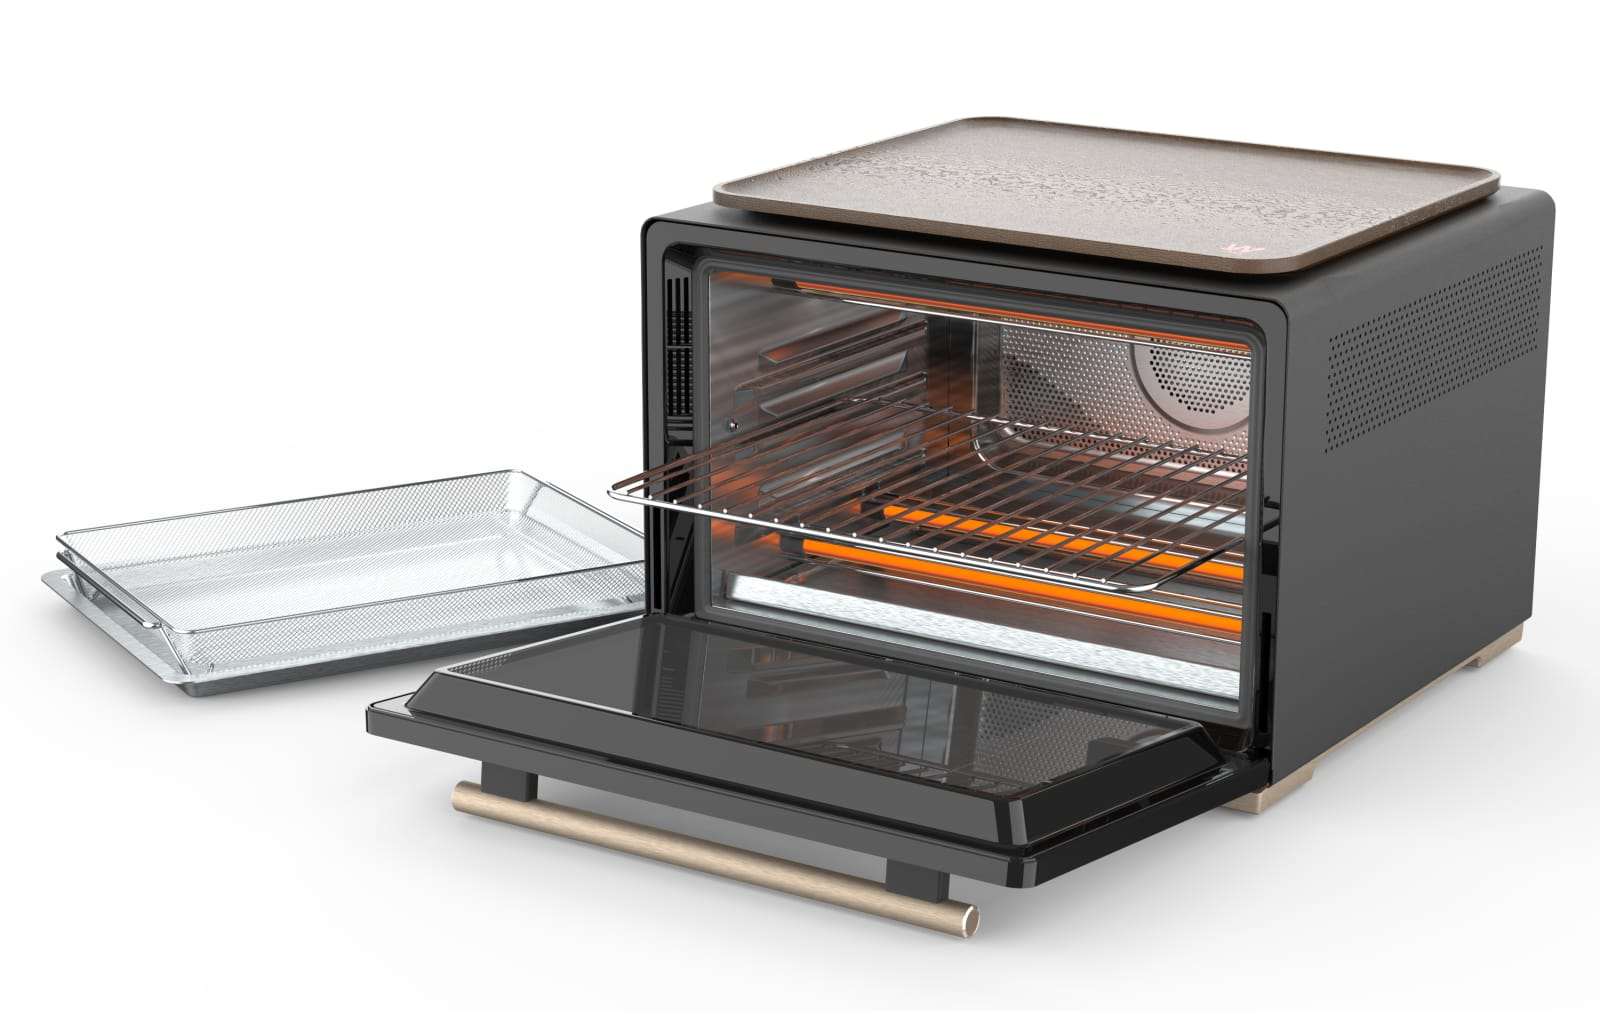 Whirlpool's smart oven identifies your food and cooks it perfectly